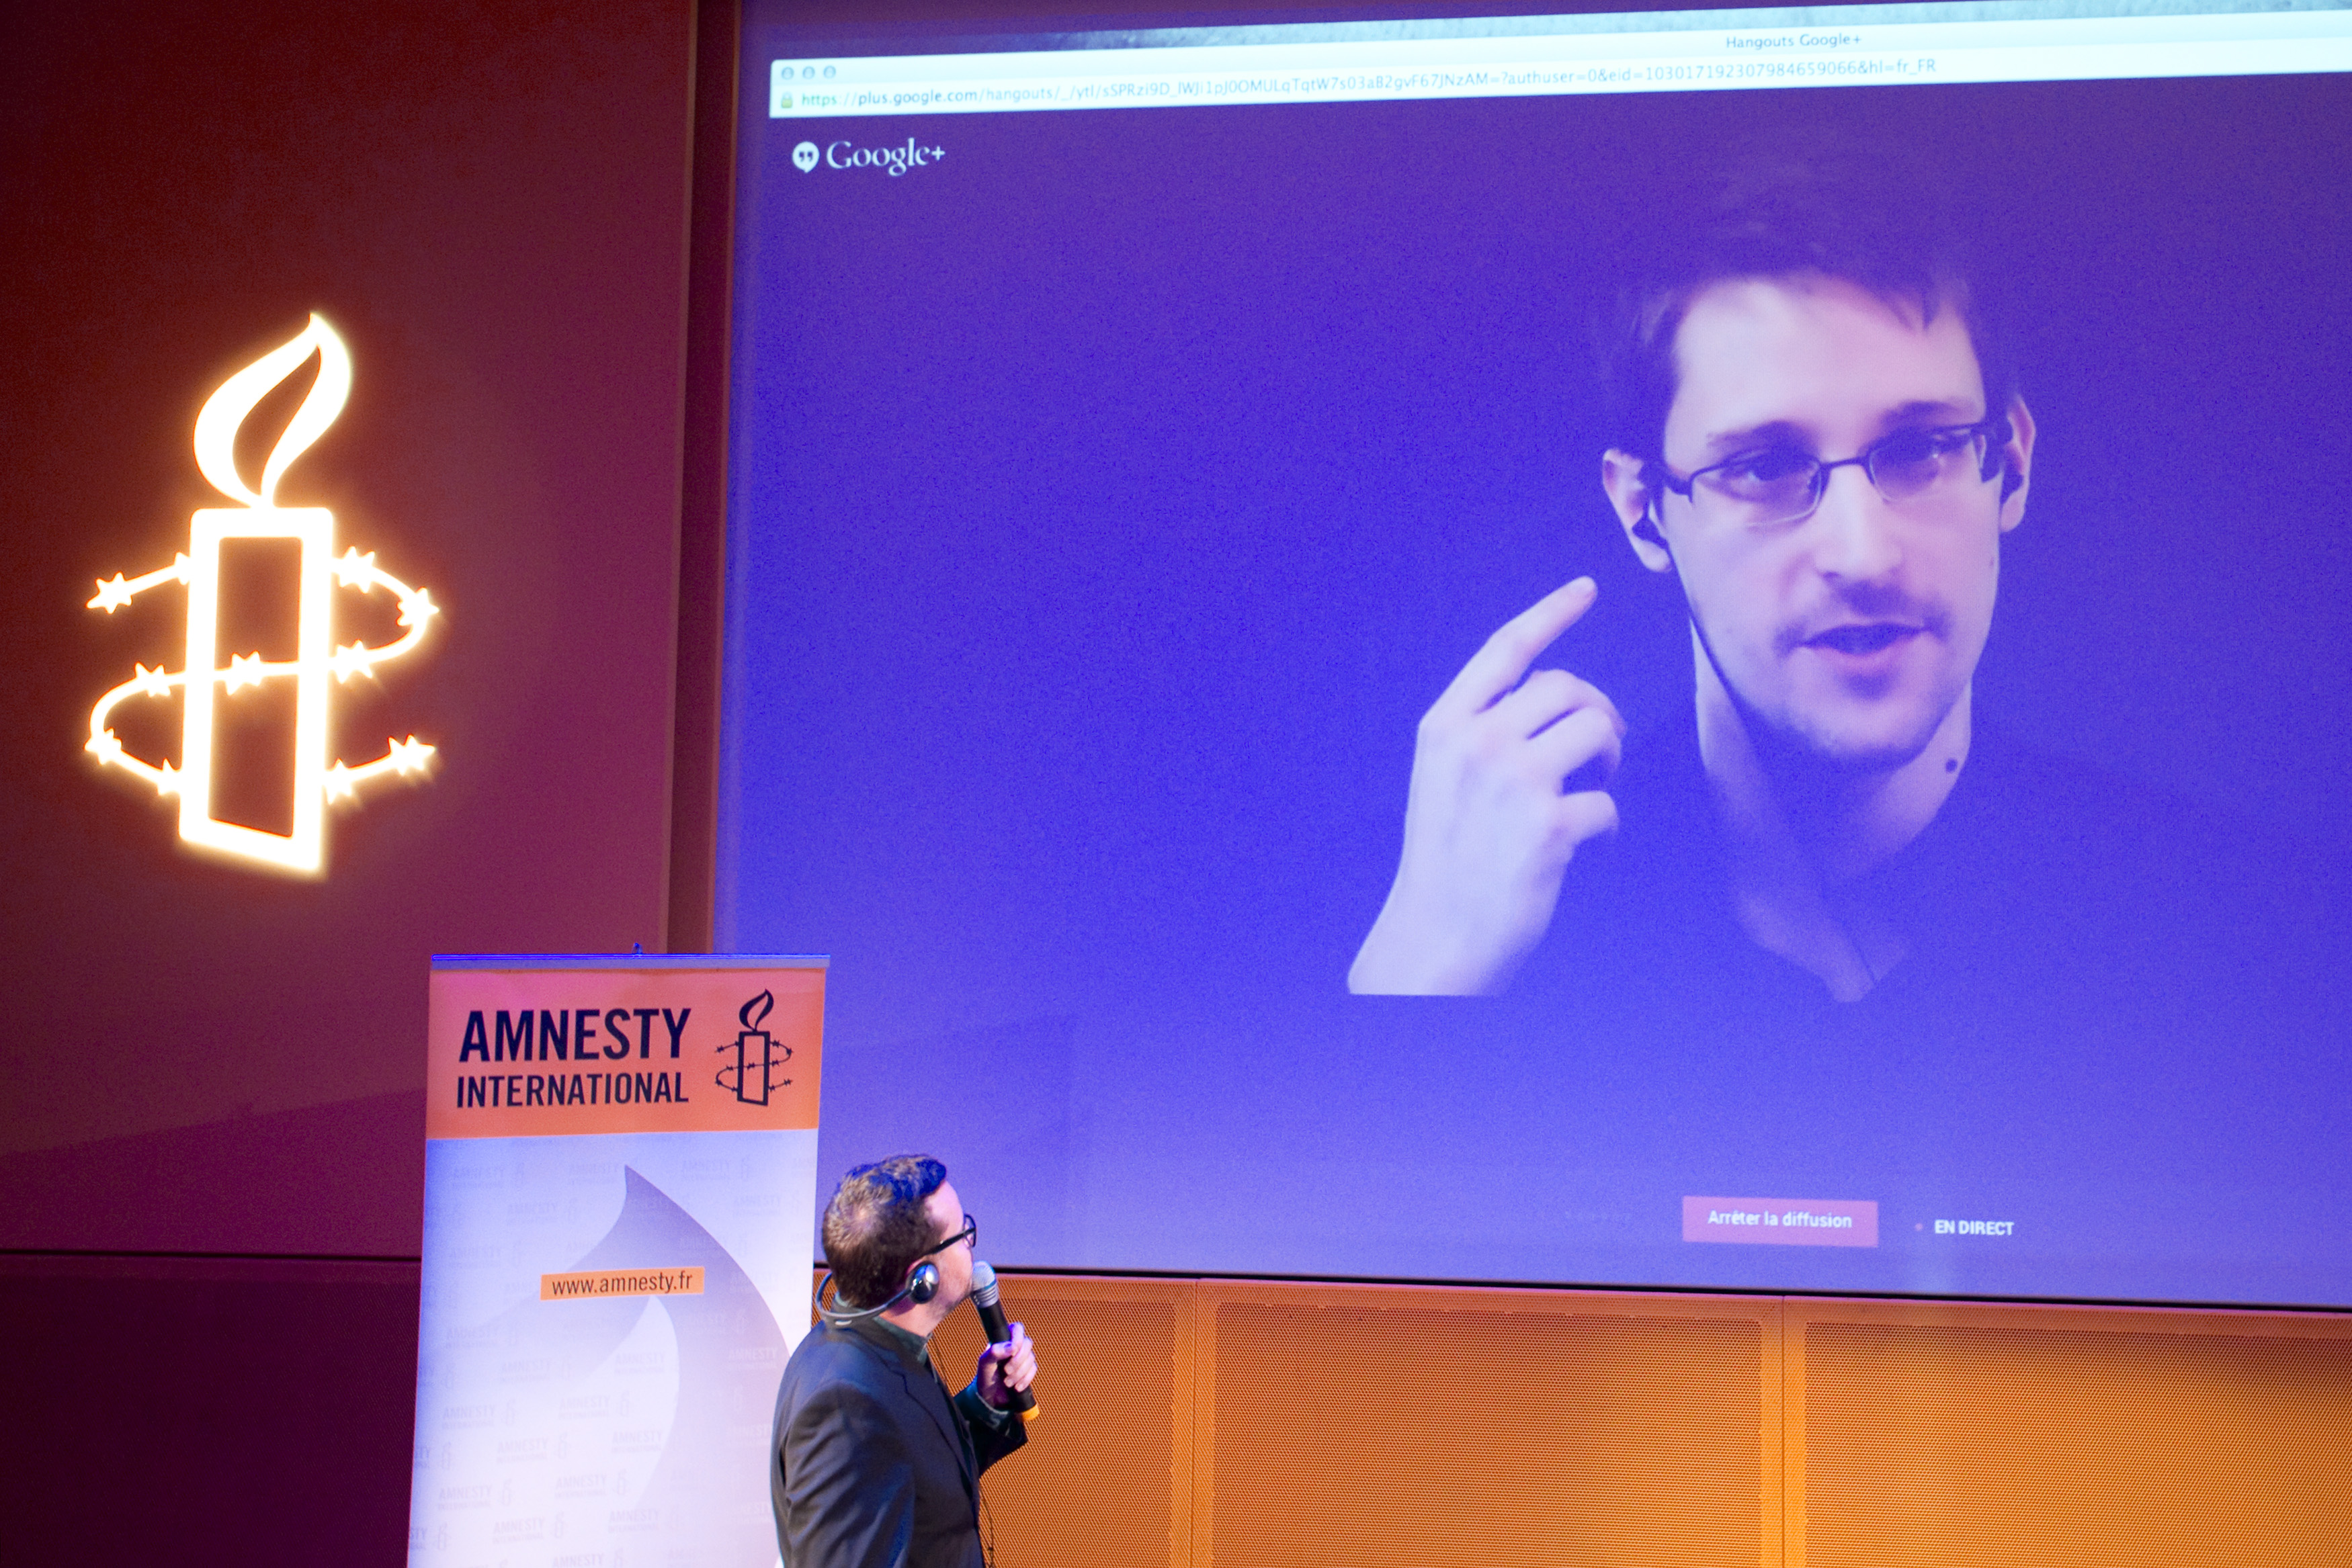 Former U.S. National Security Agency contractor Edward Snowden, who is in Moscow, is seen on a giant screen during a live video conference for an interview as part of Amnesty International's annual Write for Rights campaign at the Gaite Lyrique in Paris December 10, 2014